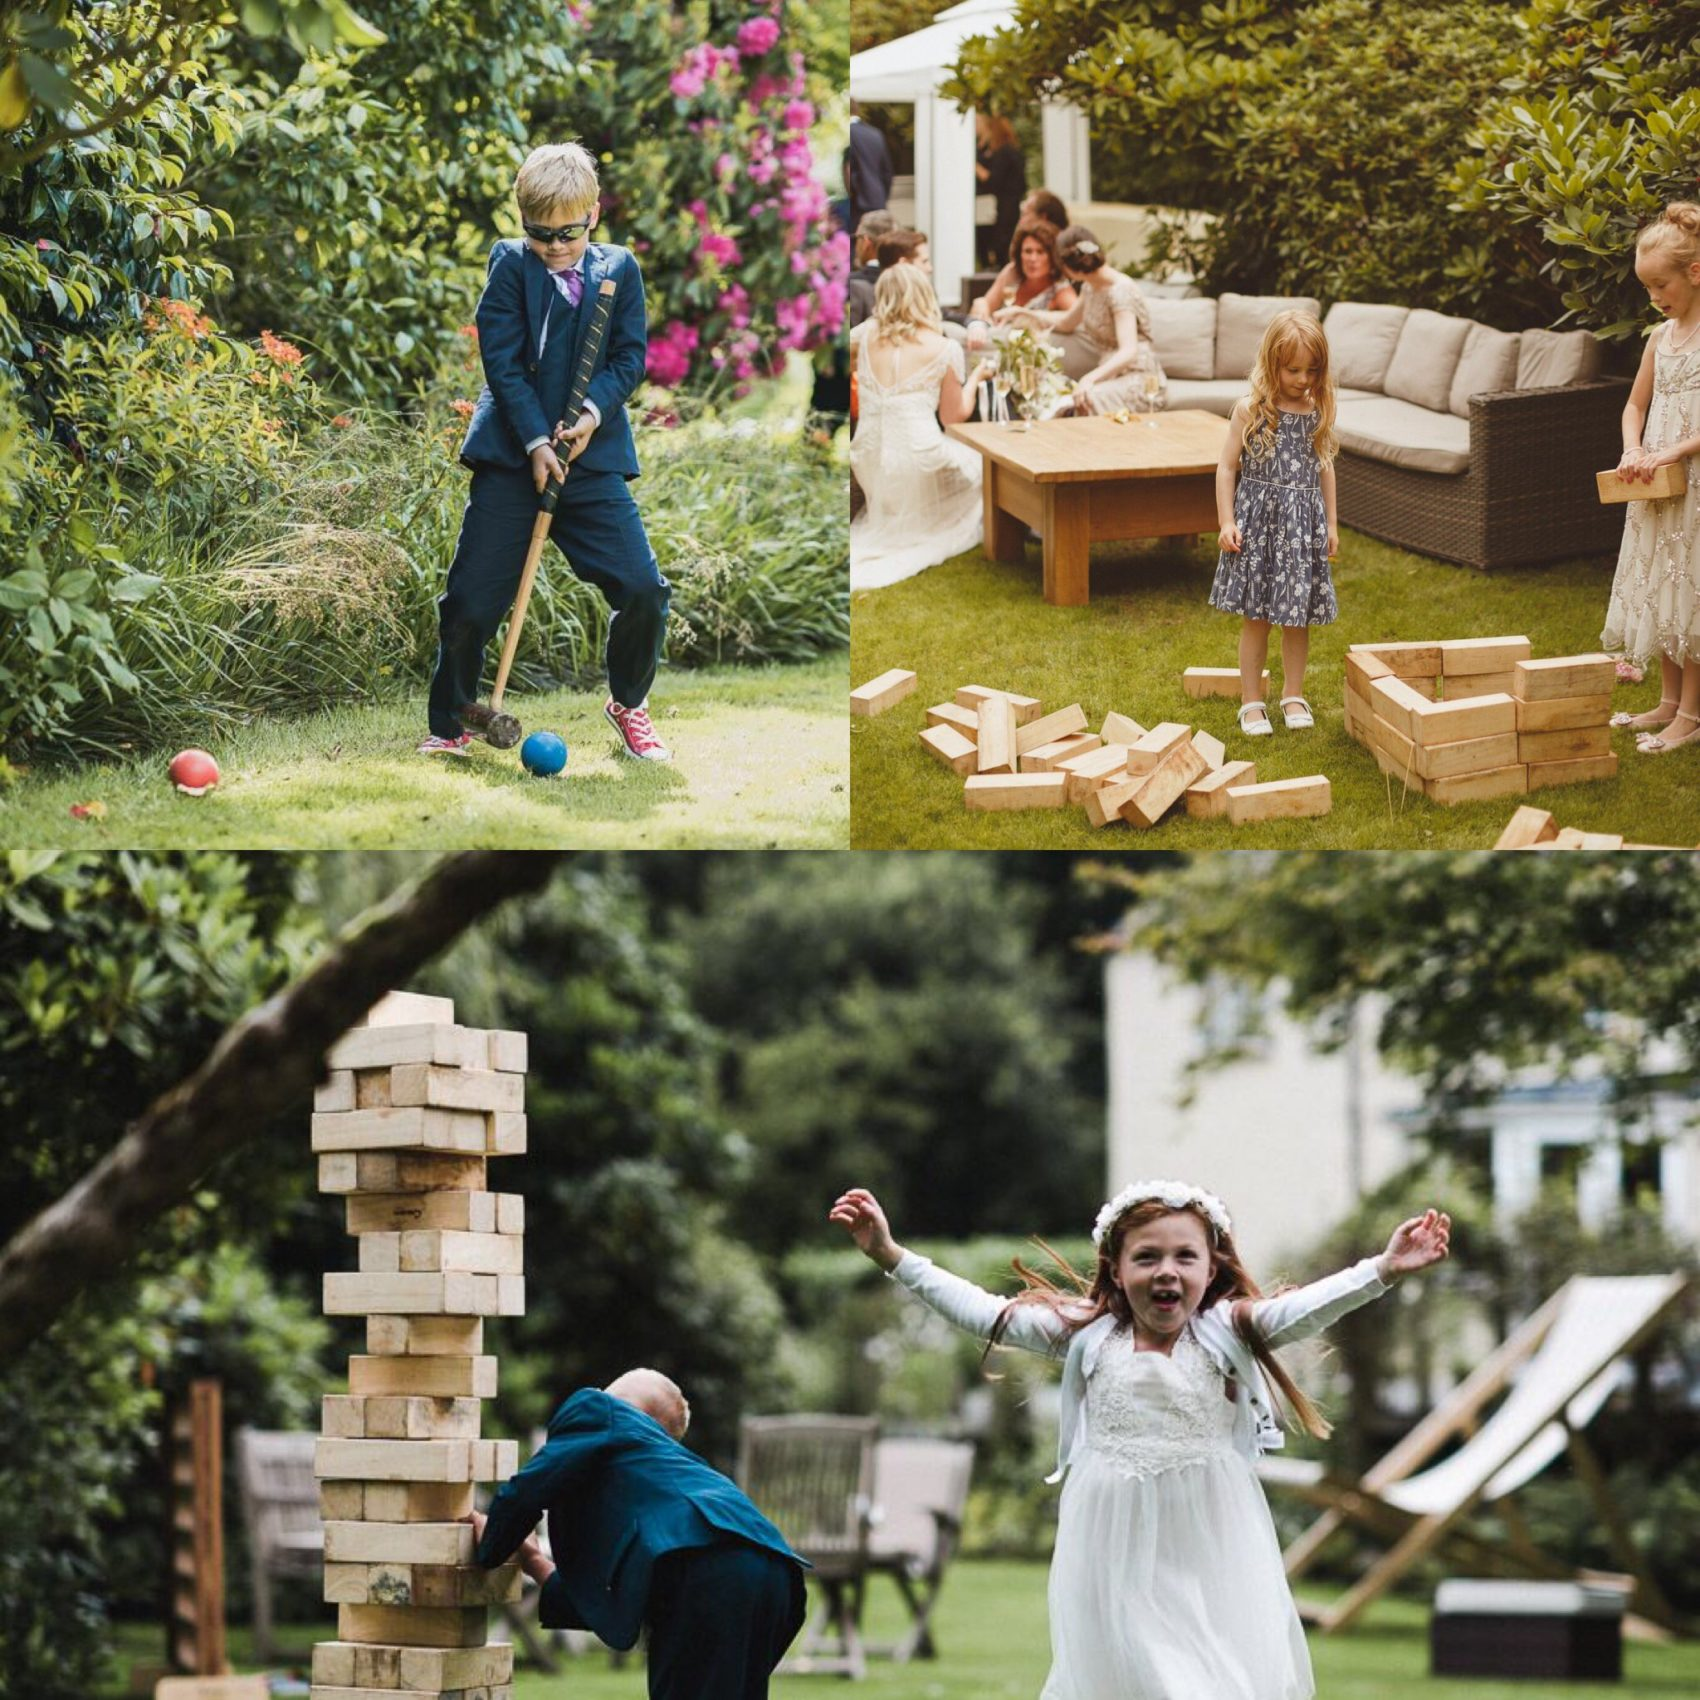 garden games, giant, jenga, garden, croquet, children, kids, wedding, ever after, 2019, entertainment, play, fun, occupied, party,